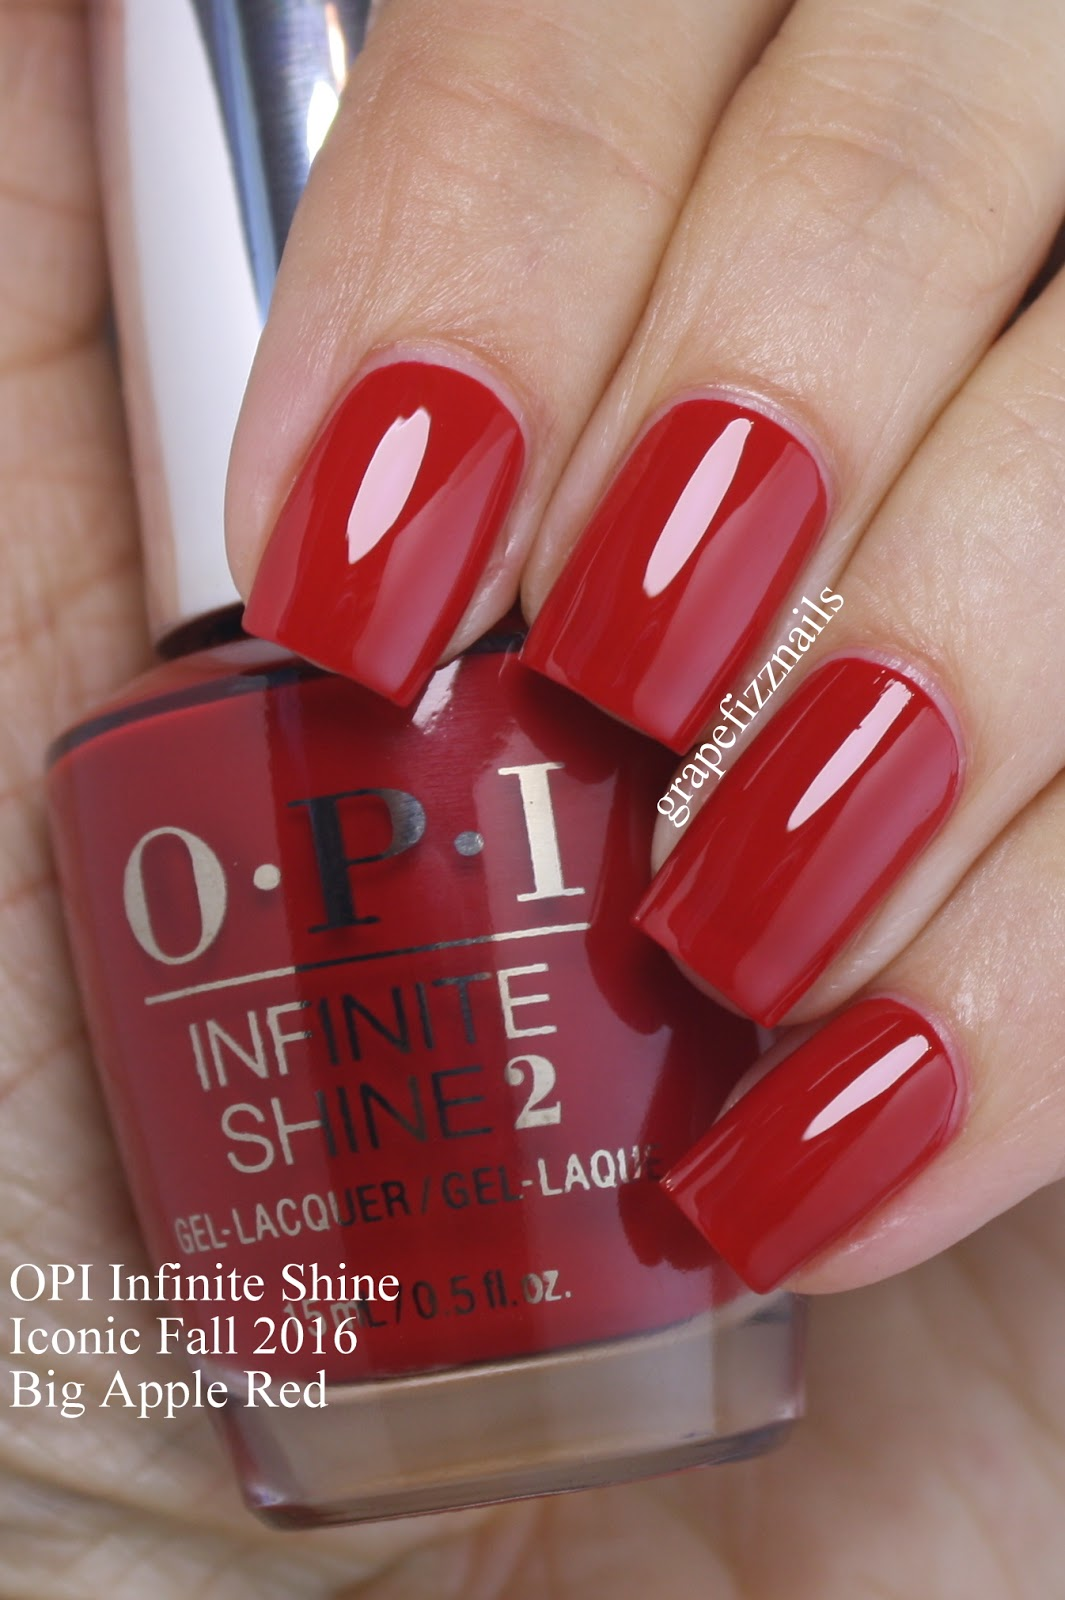 Grape Fizz Nails: OPI Infinite Shine Iconic Shades for Fall 2016